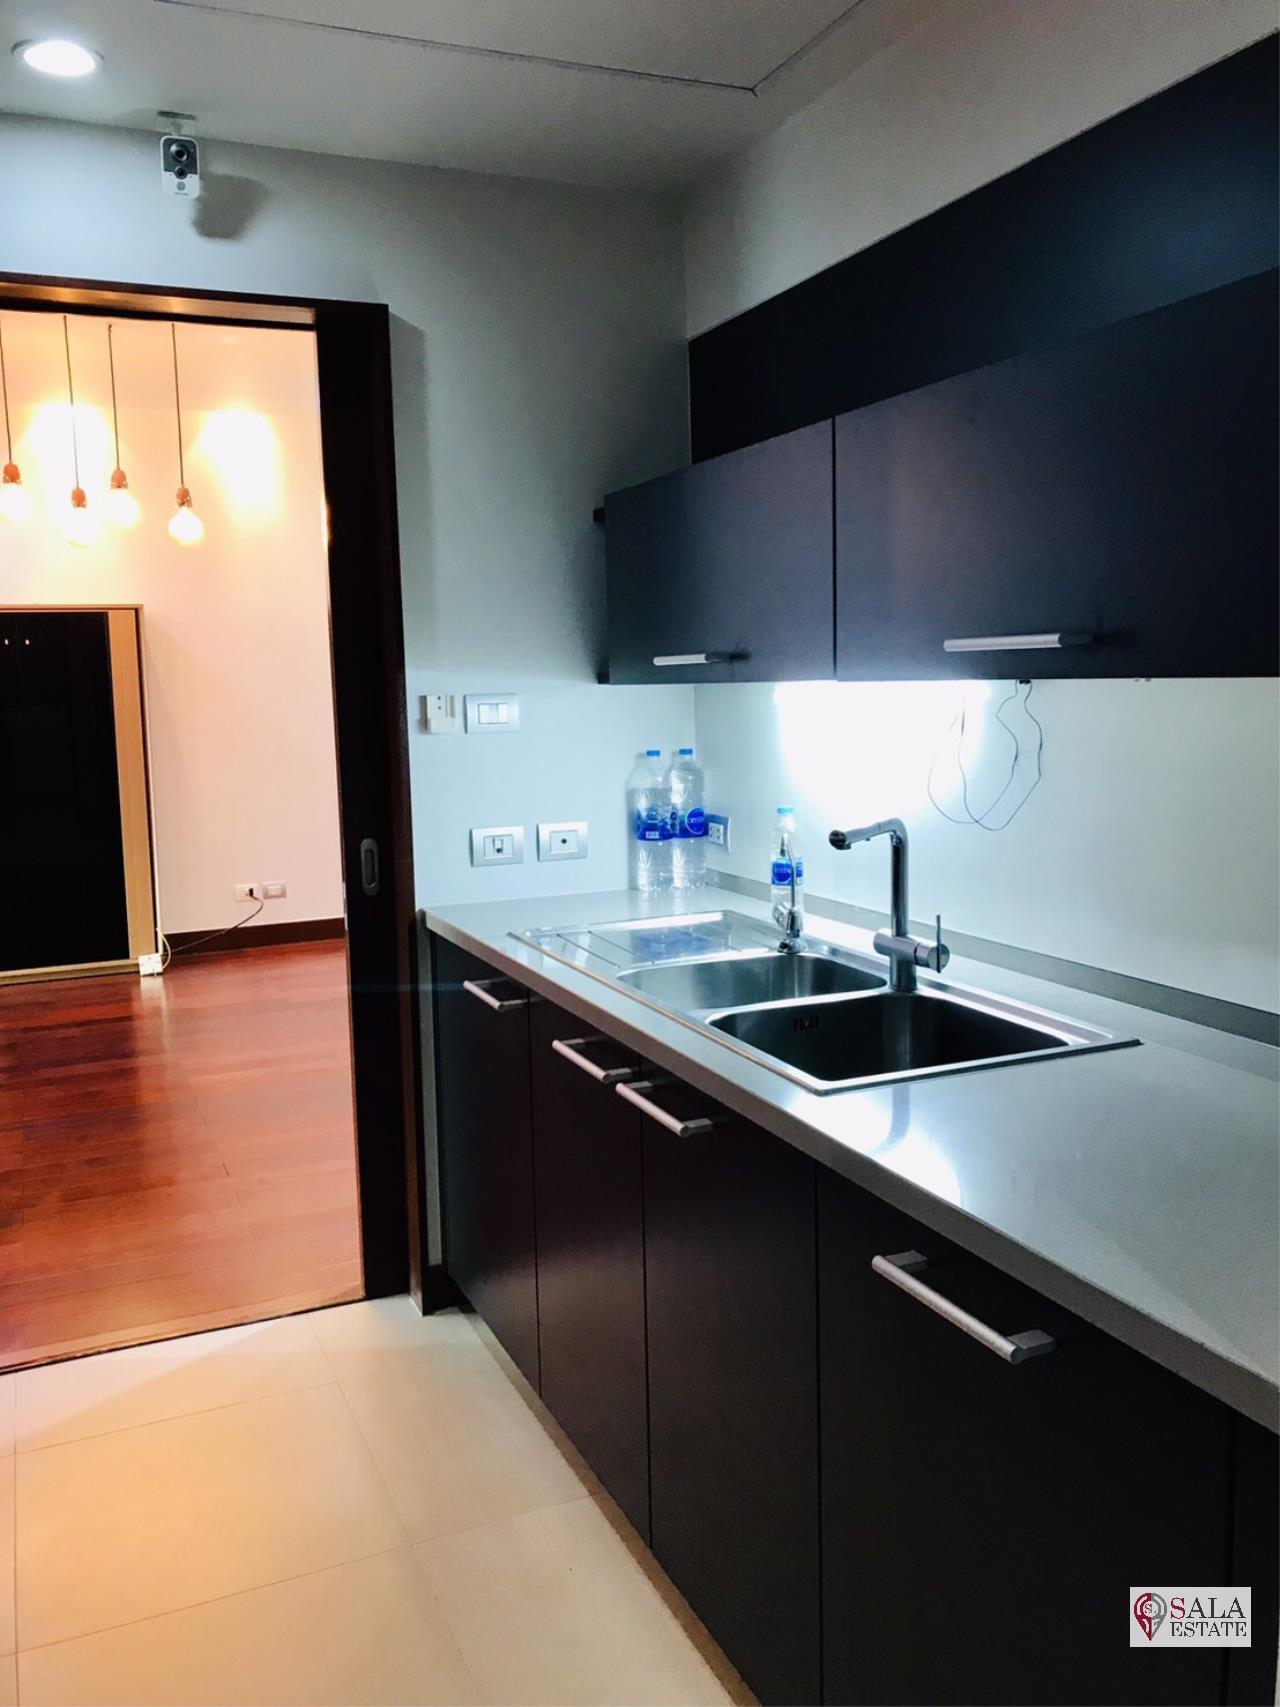 SALA ESTATE Agency's ( FOR SALE/RENT ) THE PARK CHIDLOM – BTS CHIDLOM, 145 SQM, 2 BEDROOMS 2 BATHROOMS, CITY VIEW 7